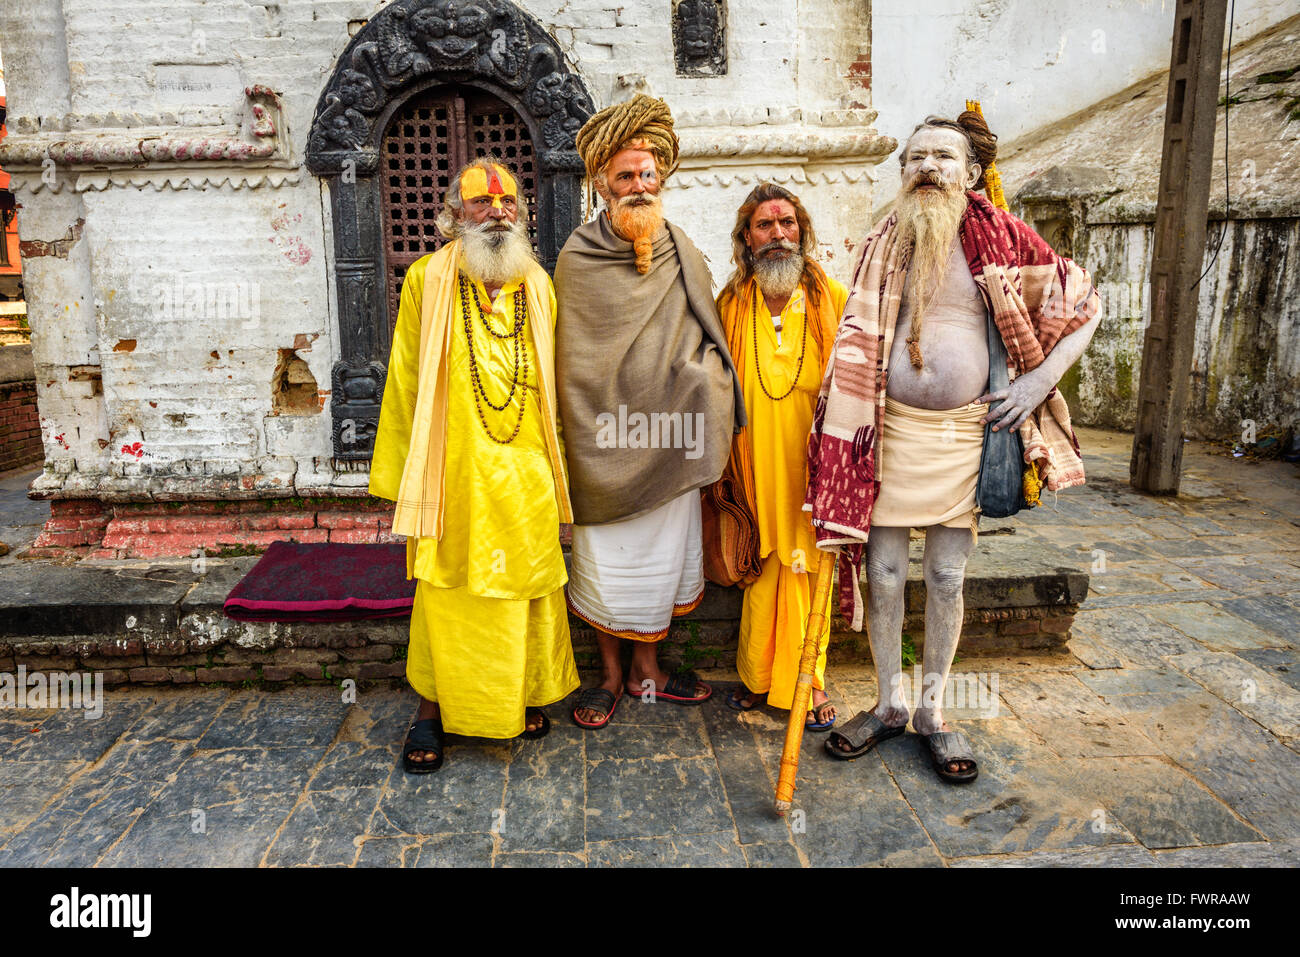 Wandering  Shaiva sadhus (holy men) with traditional long hair and beards in Nepal - Stock Image